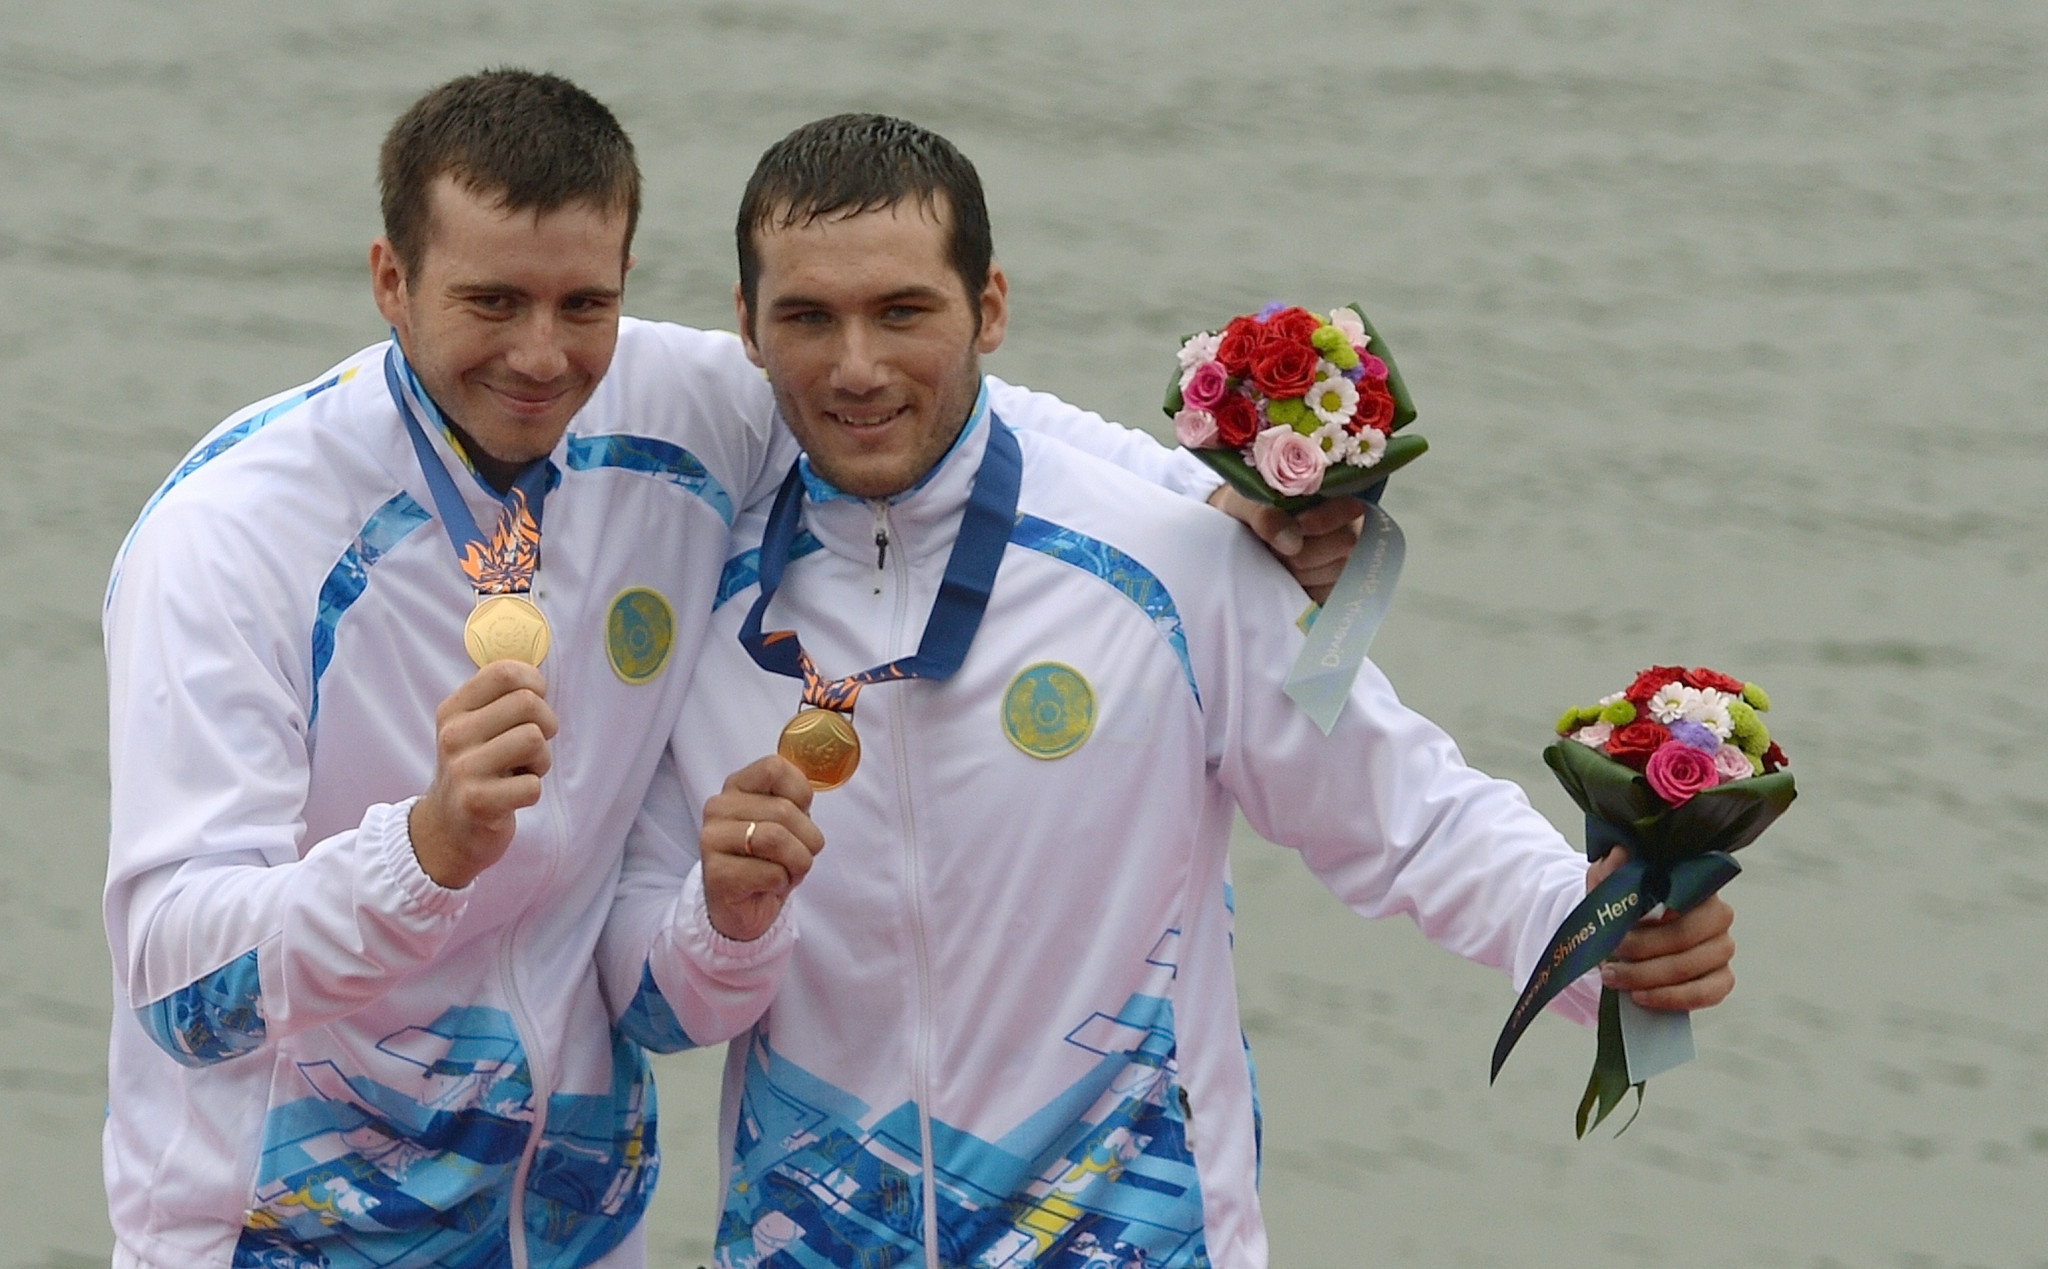 Brothers Sergey and Timofey Yemelyanov secured one of three golds for Kazakhstan at the Asian canoe sprint Olympic qualifiers ©Getty Images